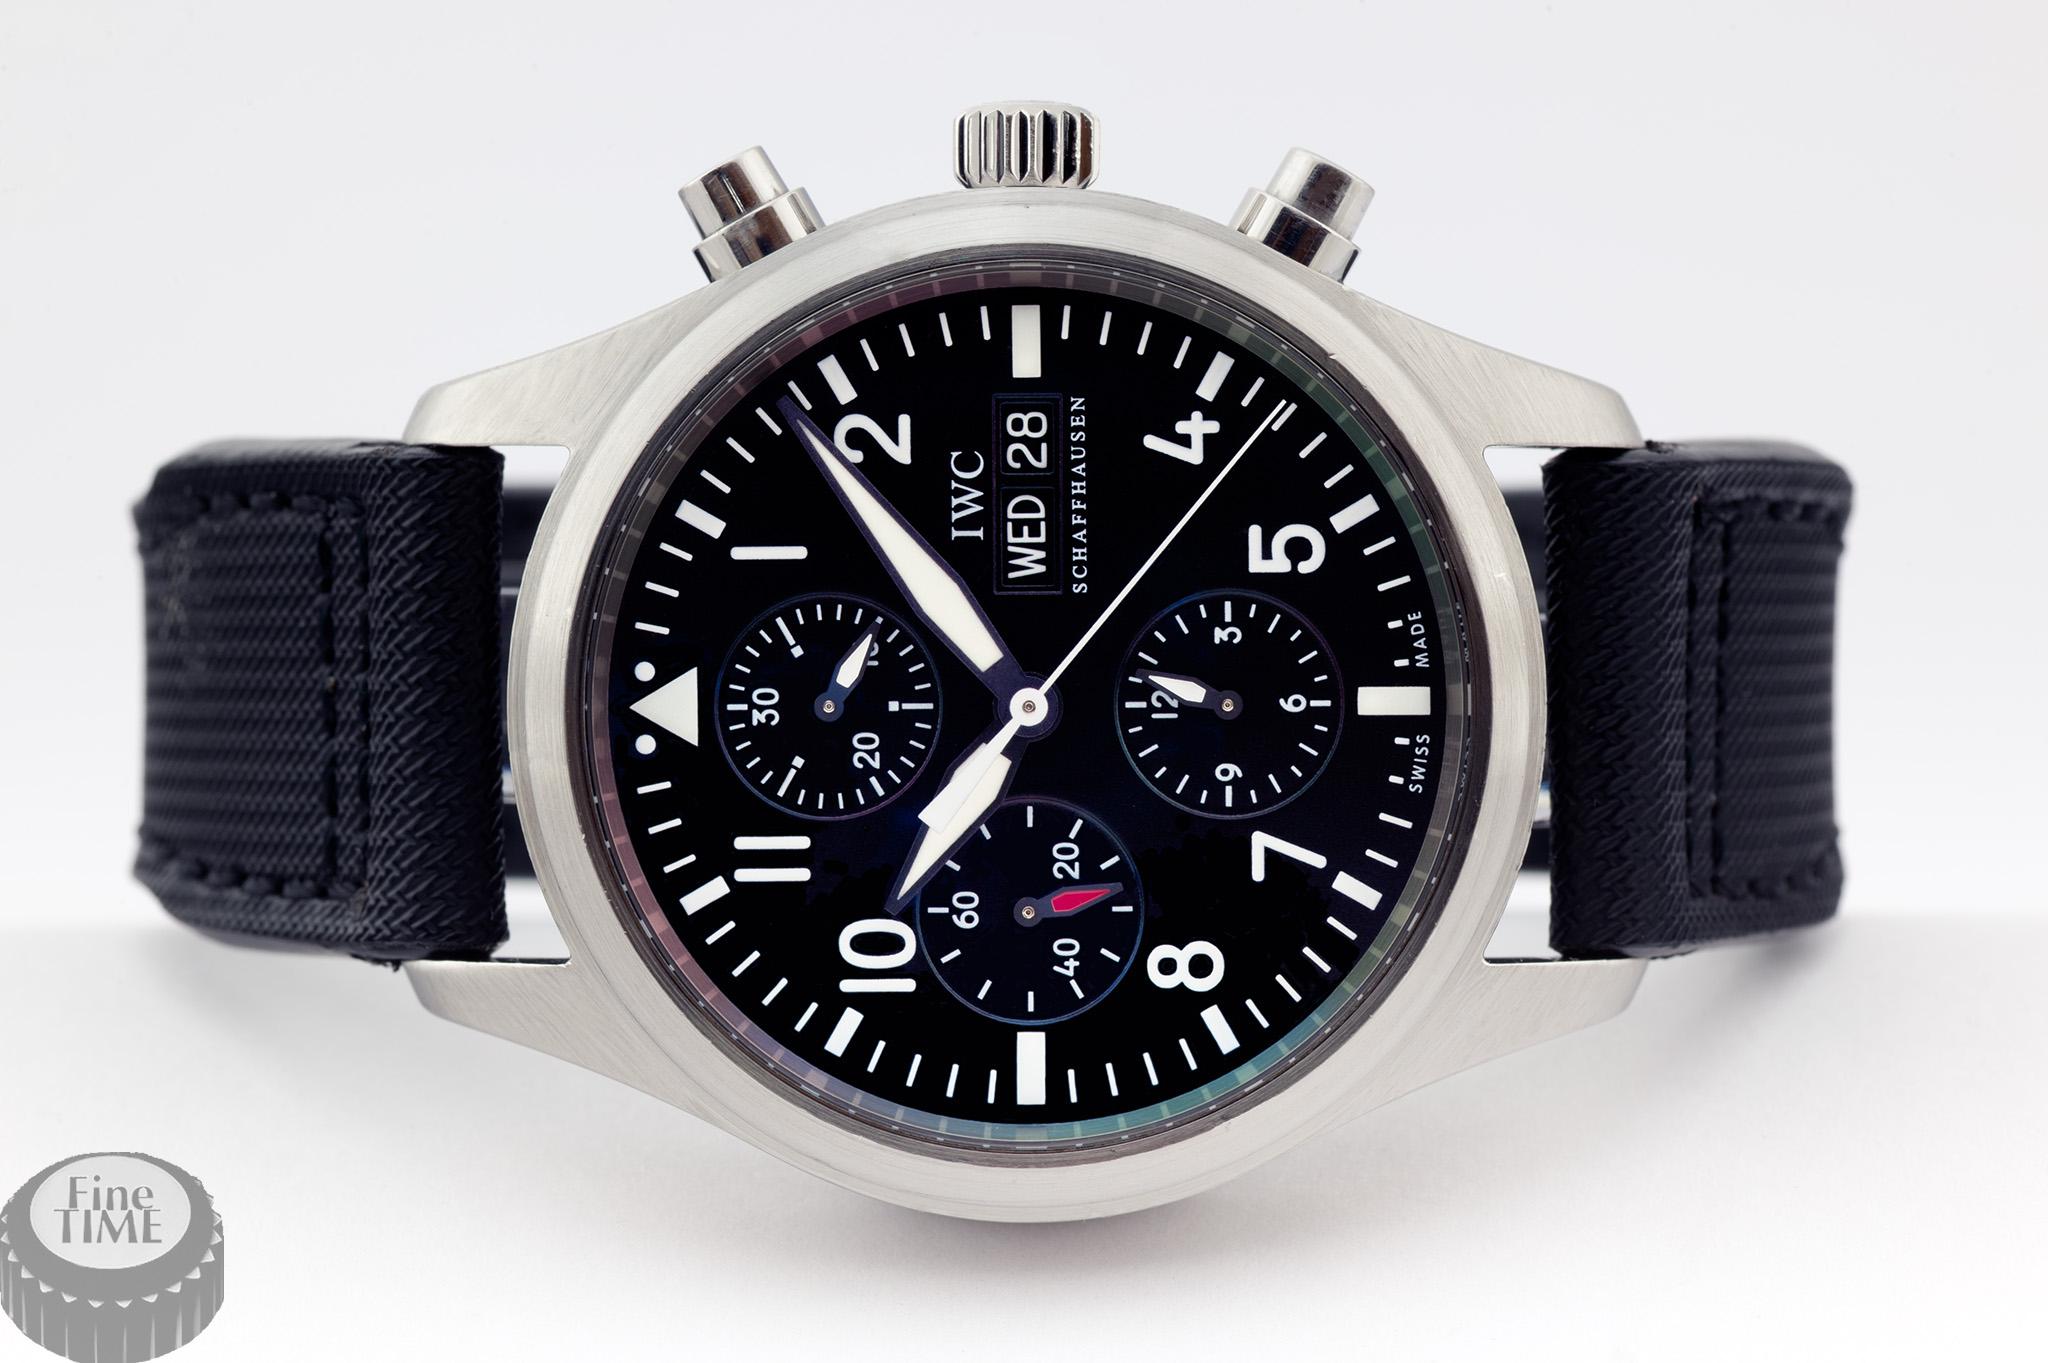 IWC IW371701 Flieger Spitfire Chronograph